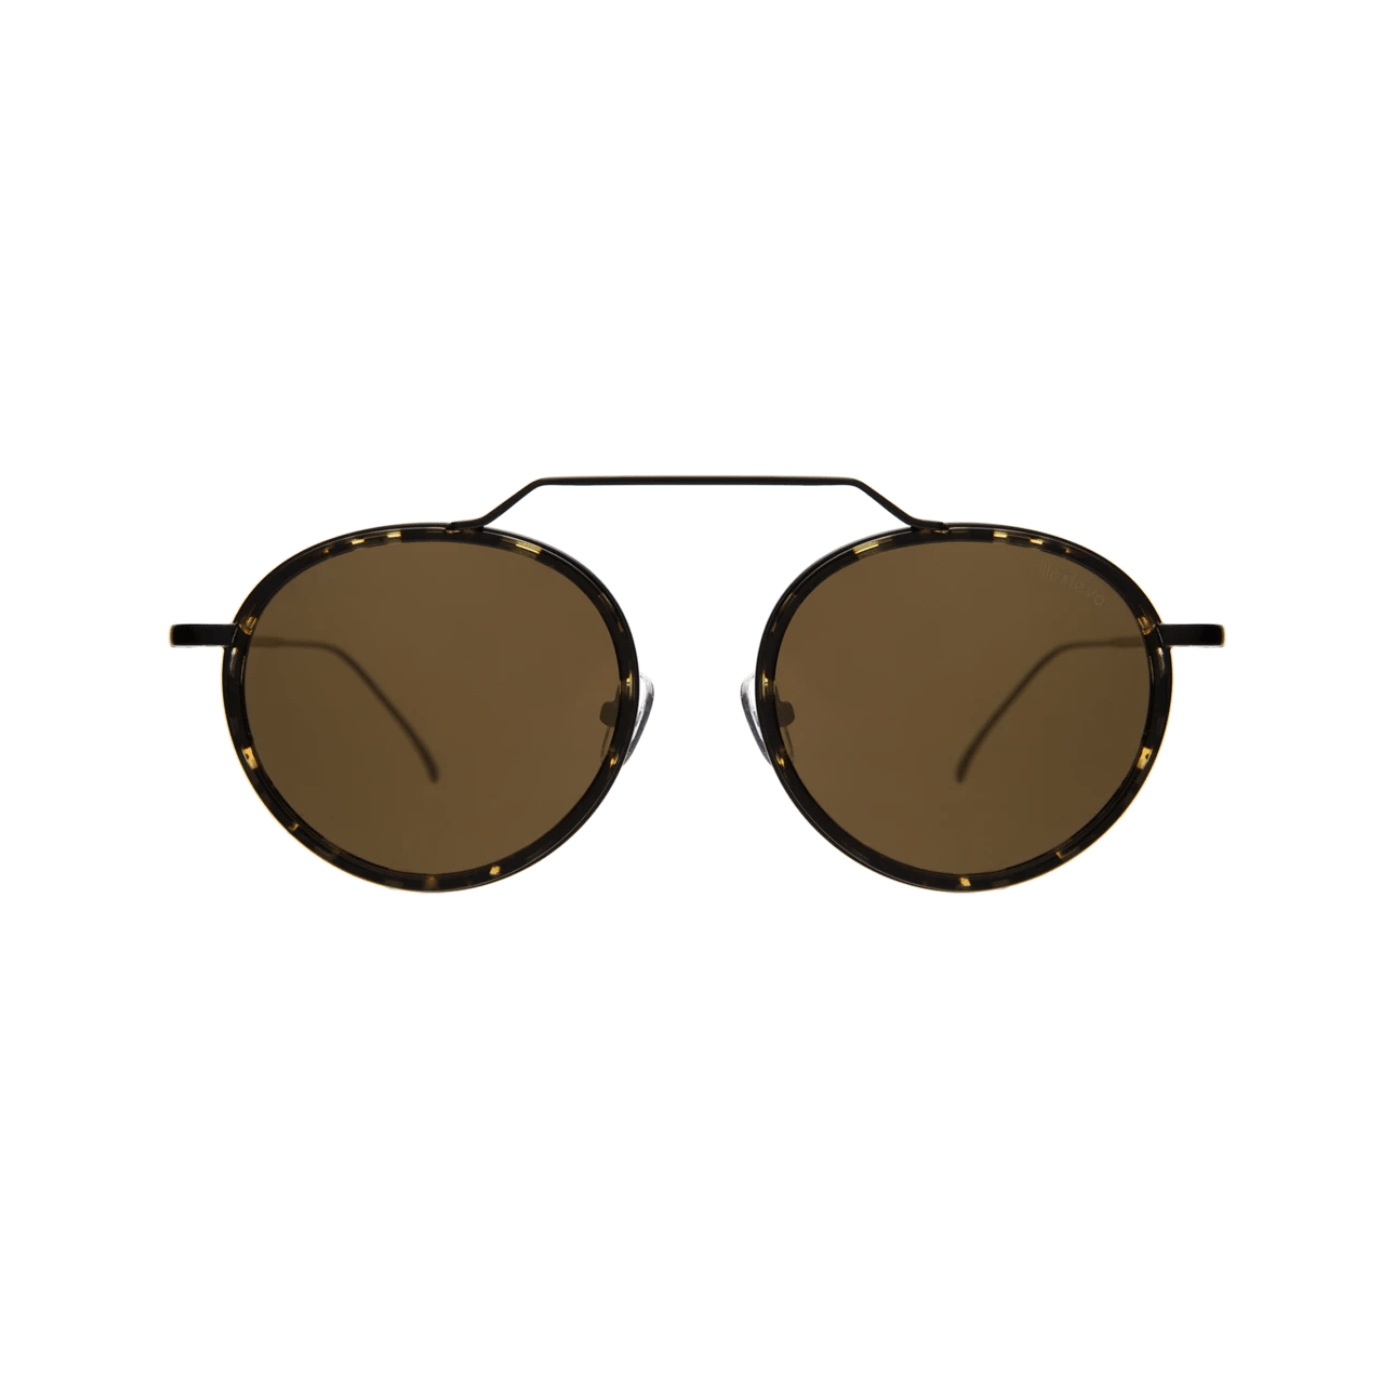 Wynwood Ace Sunglasses / Neighborhood Goods